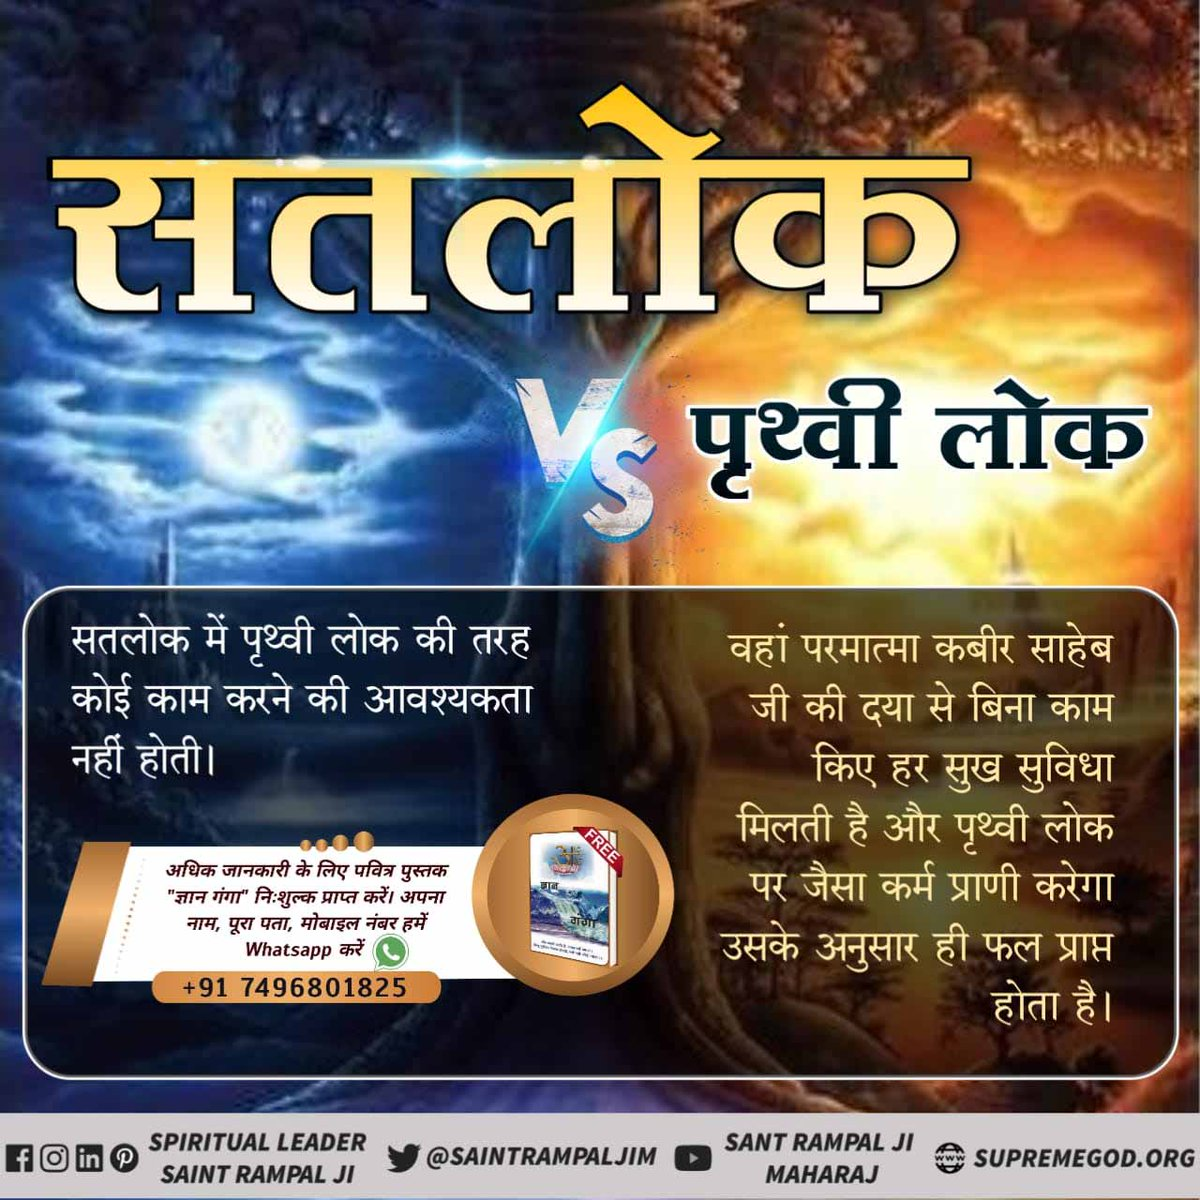 #सतलोक_VS_पृथ्वीलोक  #GodMorningMonday  Eternal place Satlok Kabir Saheb appears with different name in different places and imparts true spiritual knowledge. He is the destroyer of sins. God is one. @SaintRampalJiM